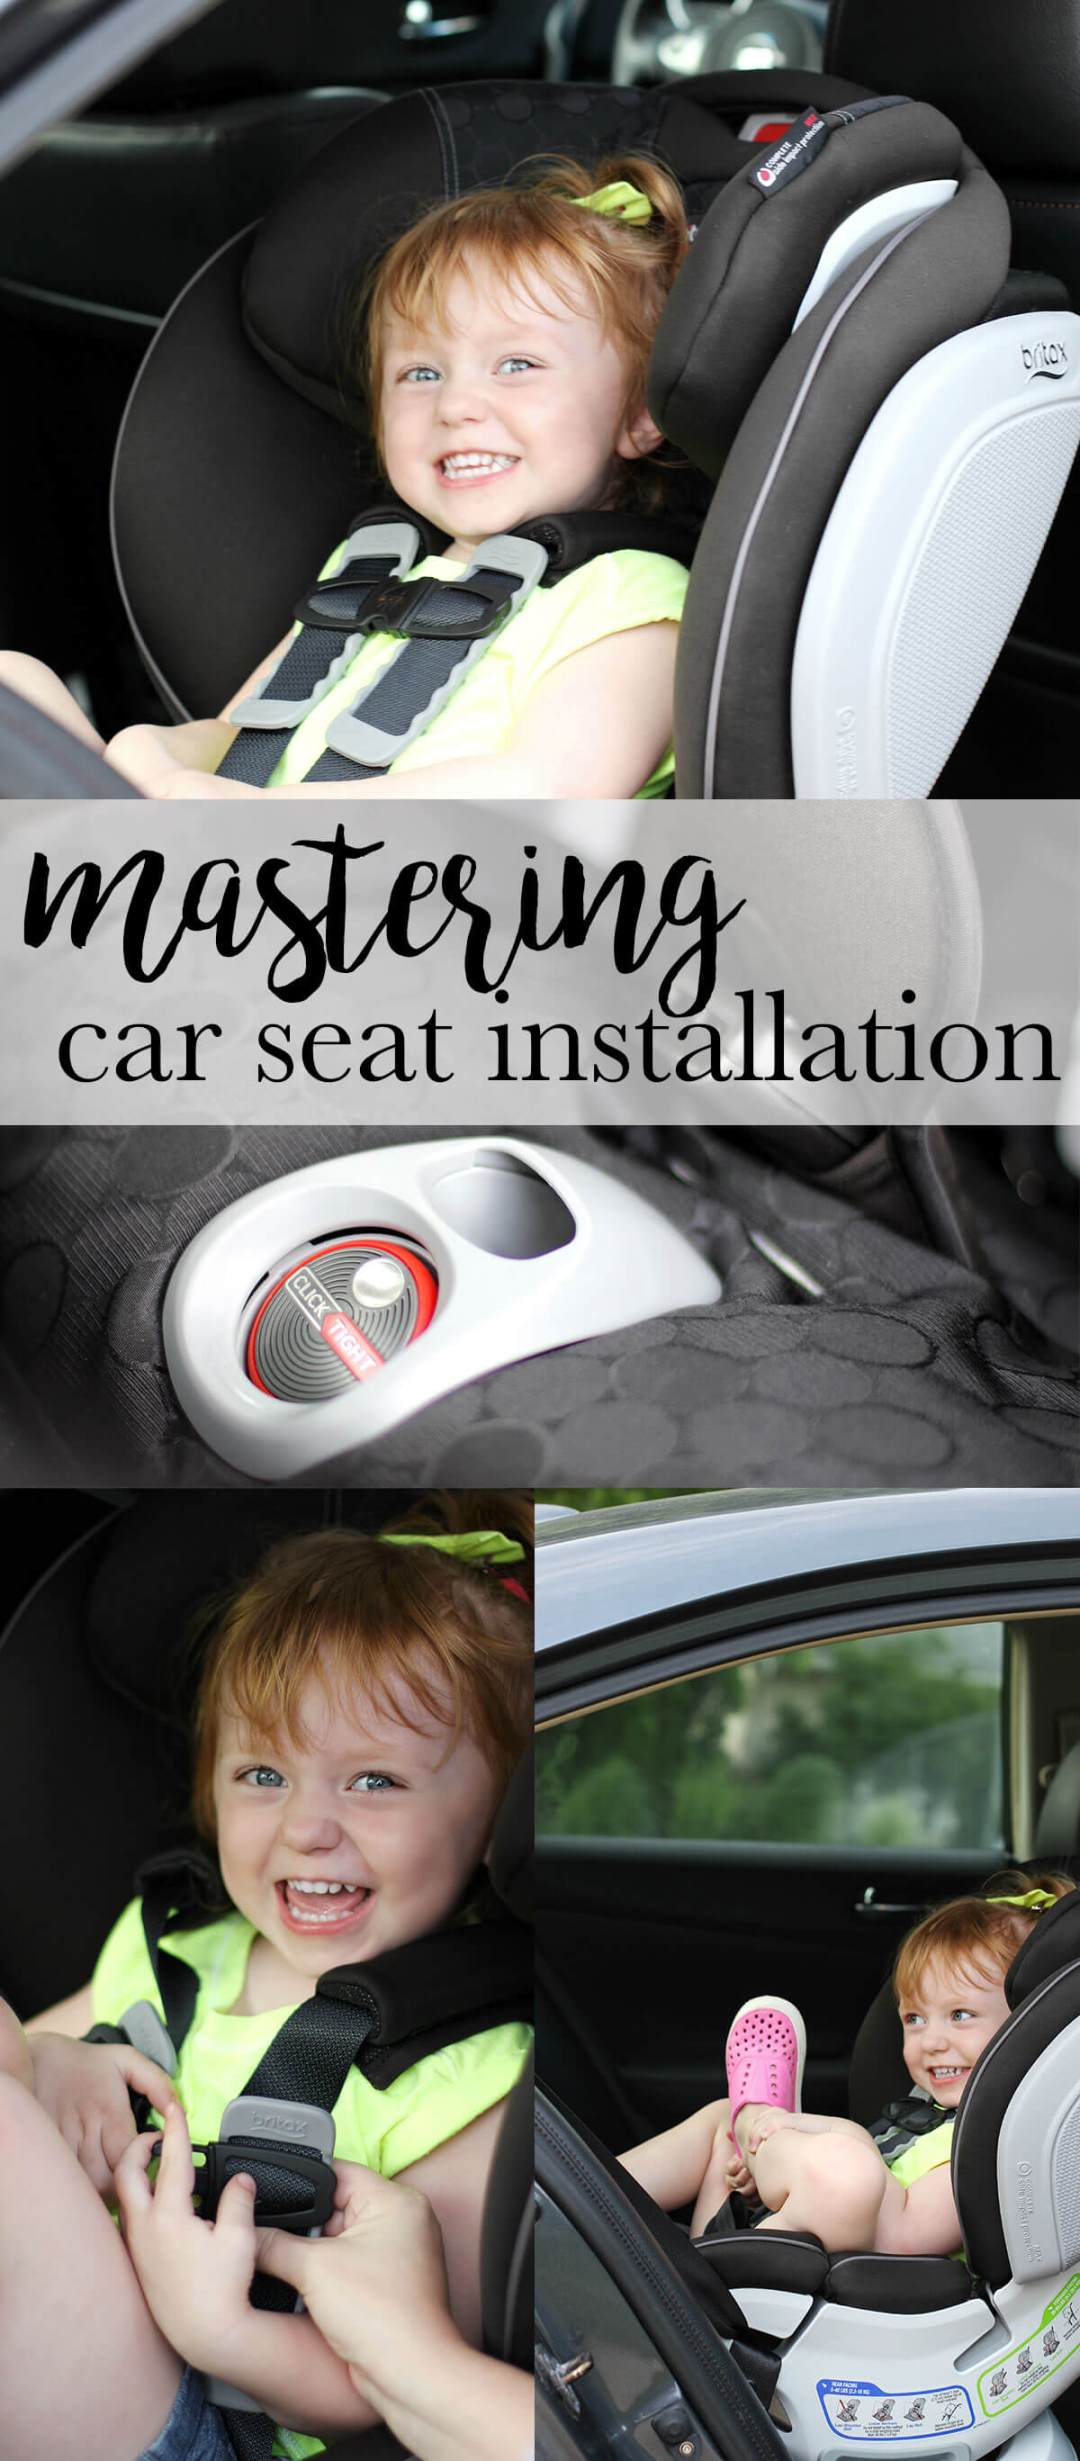 Mastering Safe Car Seat Installation